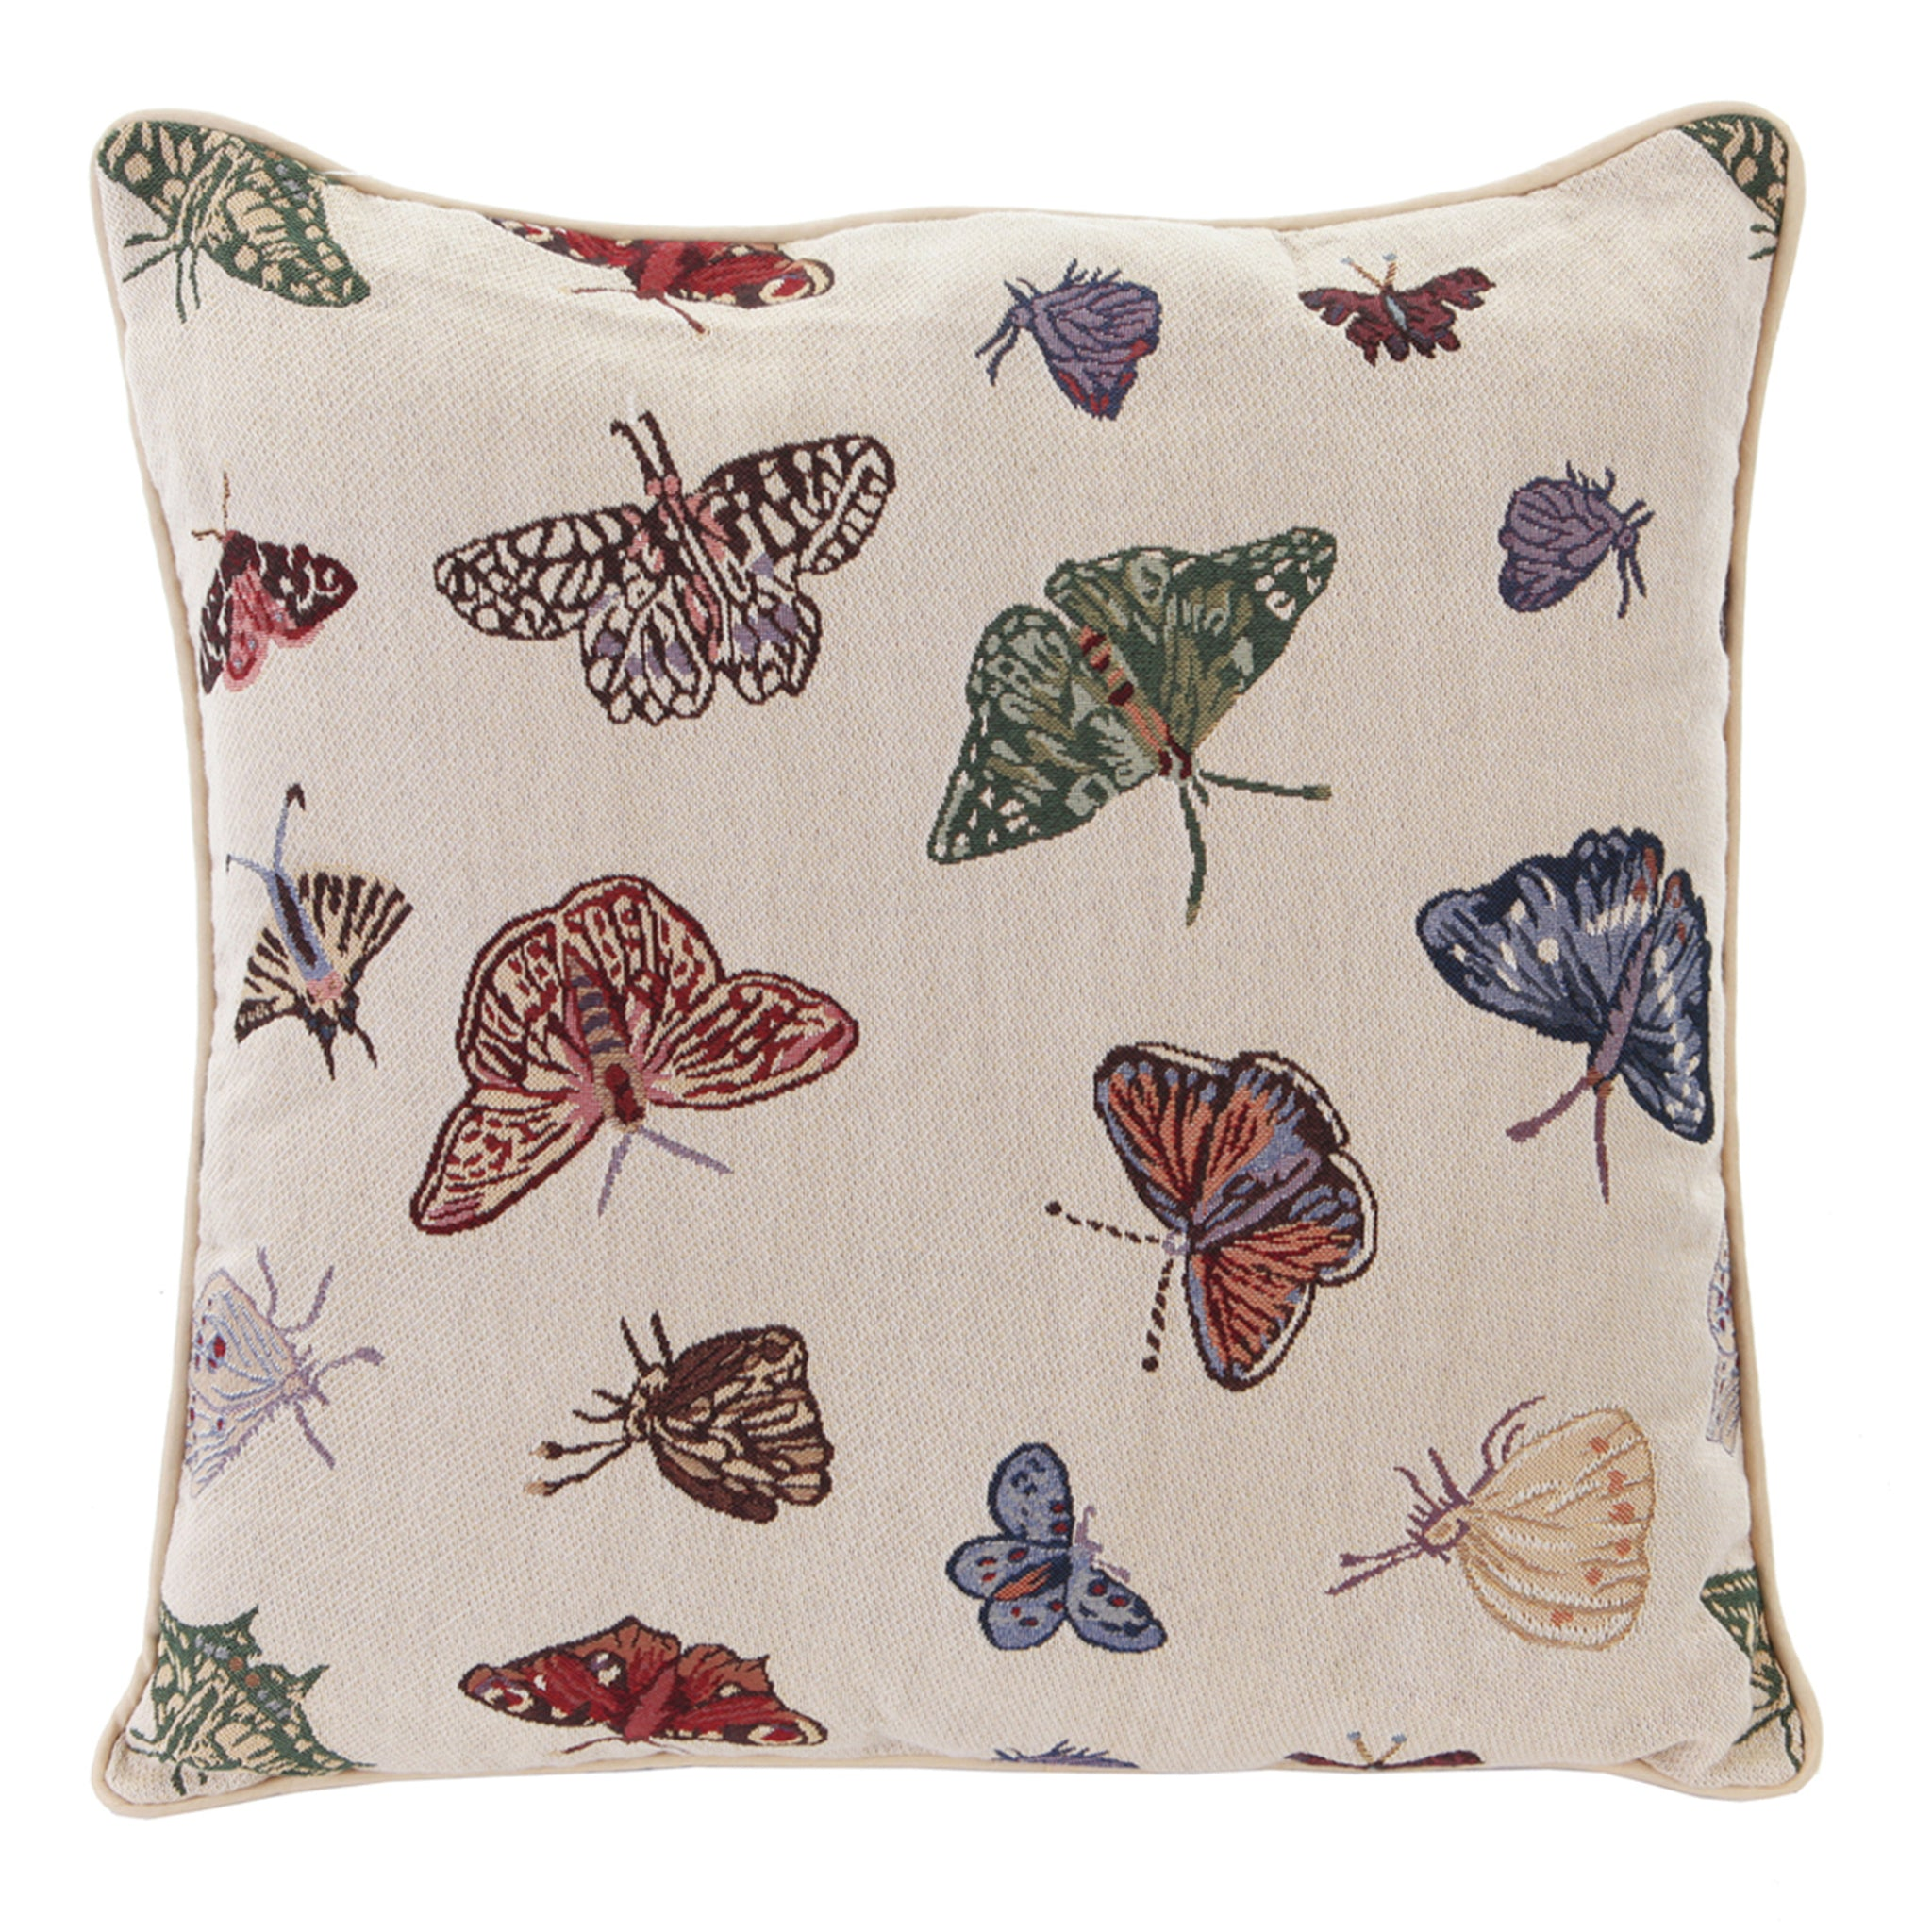 CCOV-BUTT| BUTTERFLY PILLOWCASE/CUSHION COVER | DECORATIVE DESIGN FASHION HOME PILLOW 18X18 INCH - www.signareusa.com